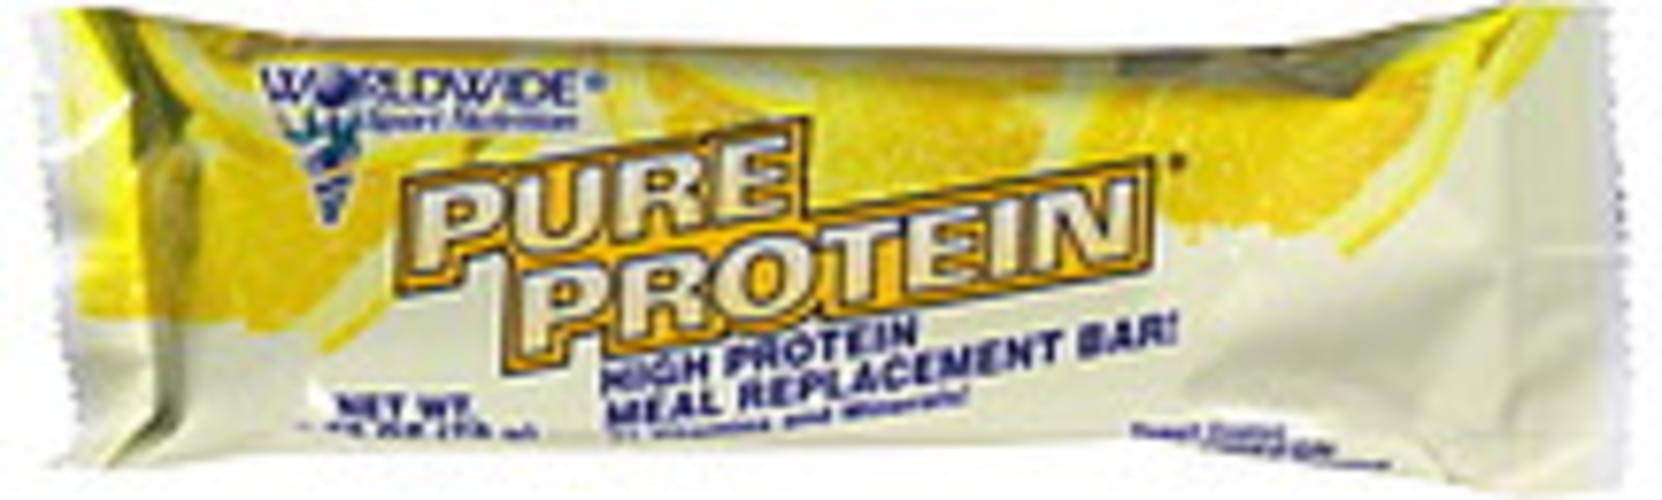 Worldwide Sport Nutrition Yogurt Coated Lemon Chiffon High Protein Meal Replacement Bar - 2.75 oz